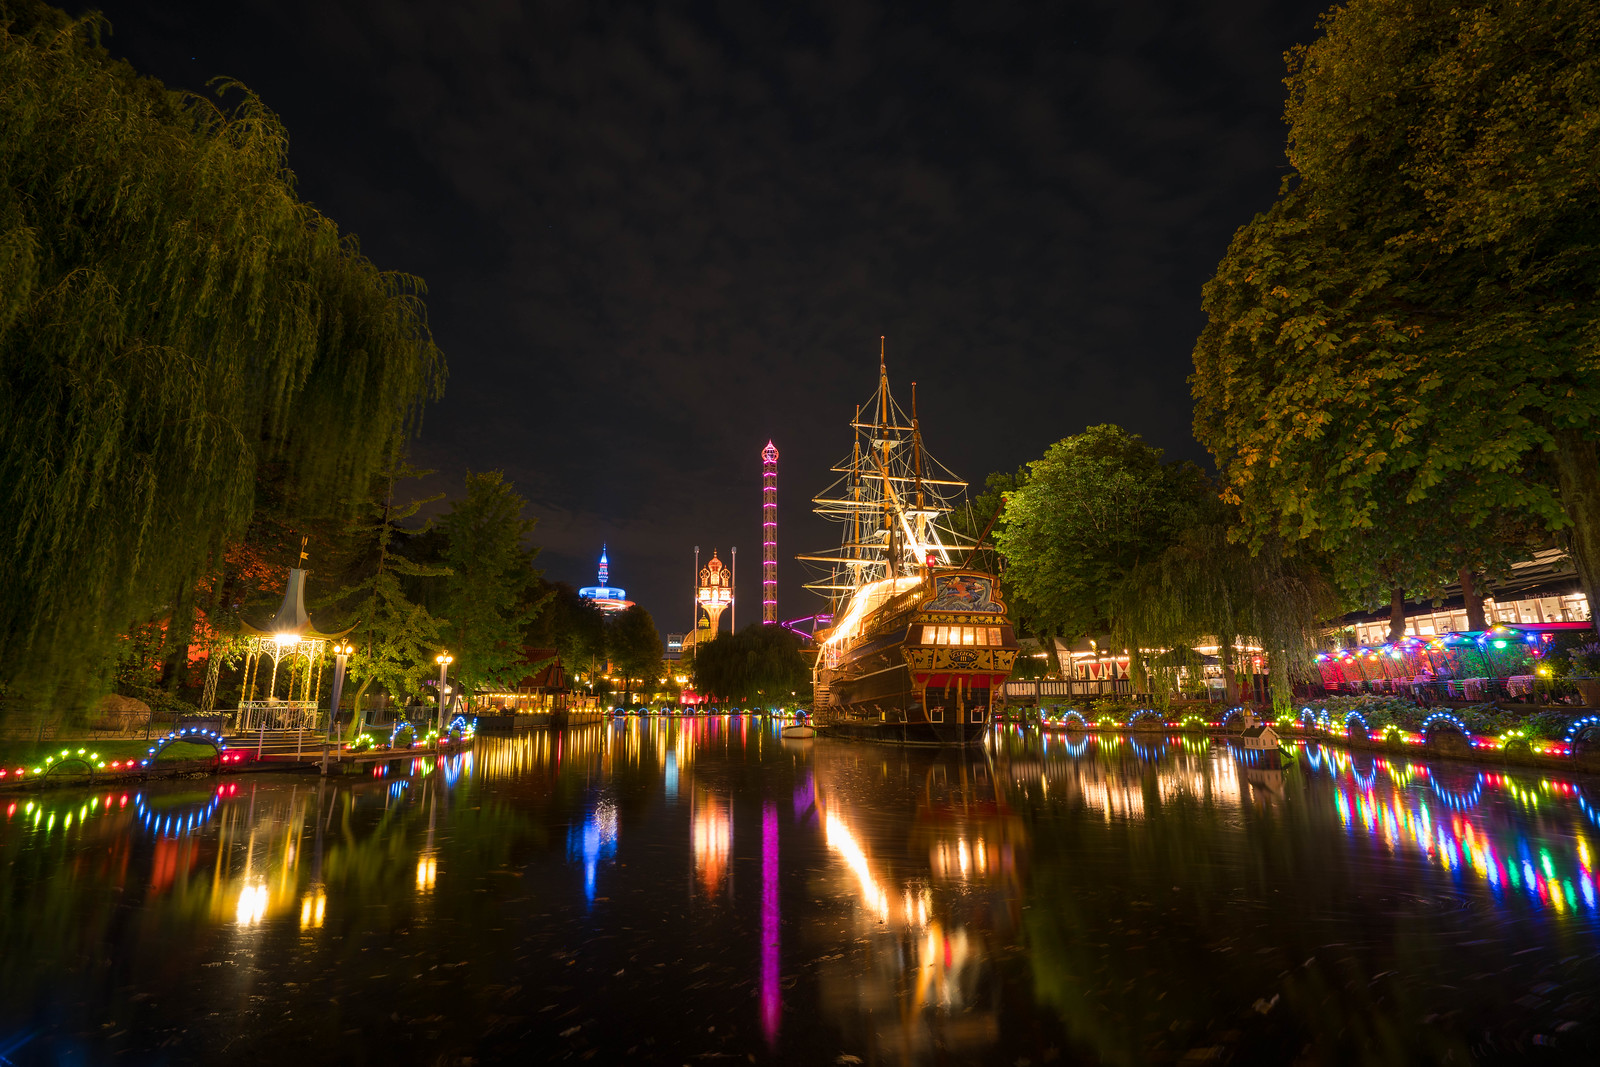 Marvel at the lights reflecting of the lake in the middle of Tivoli Gardens